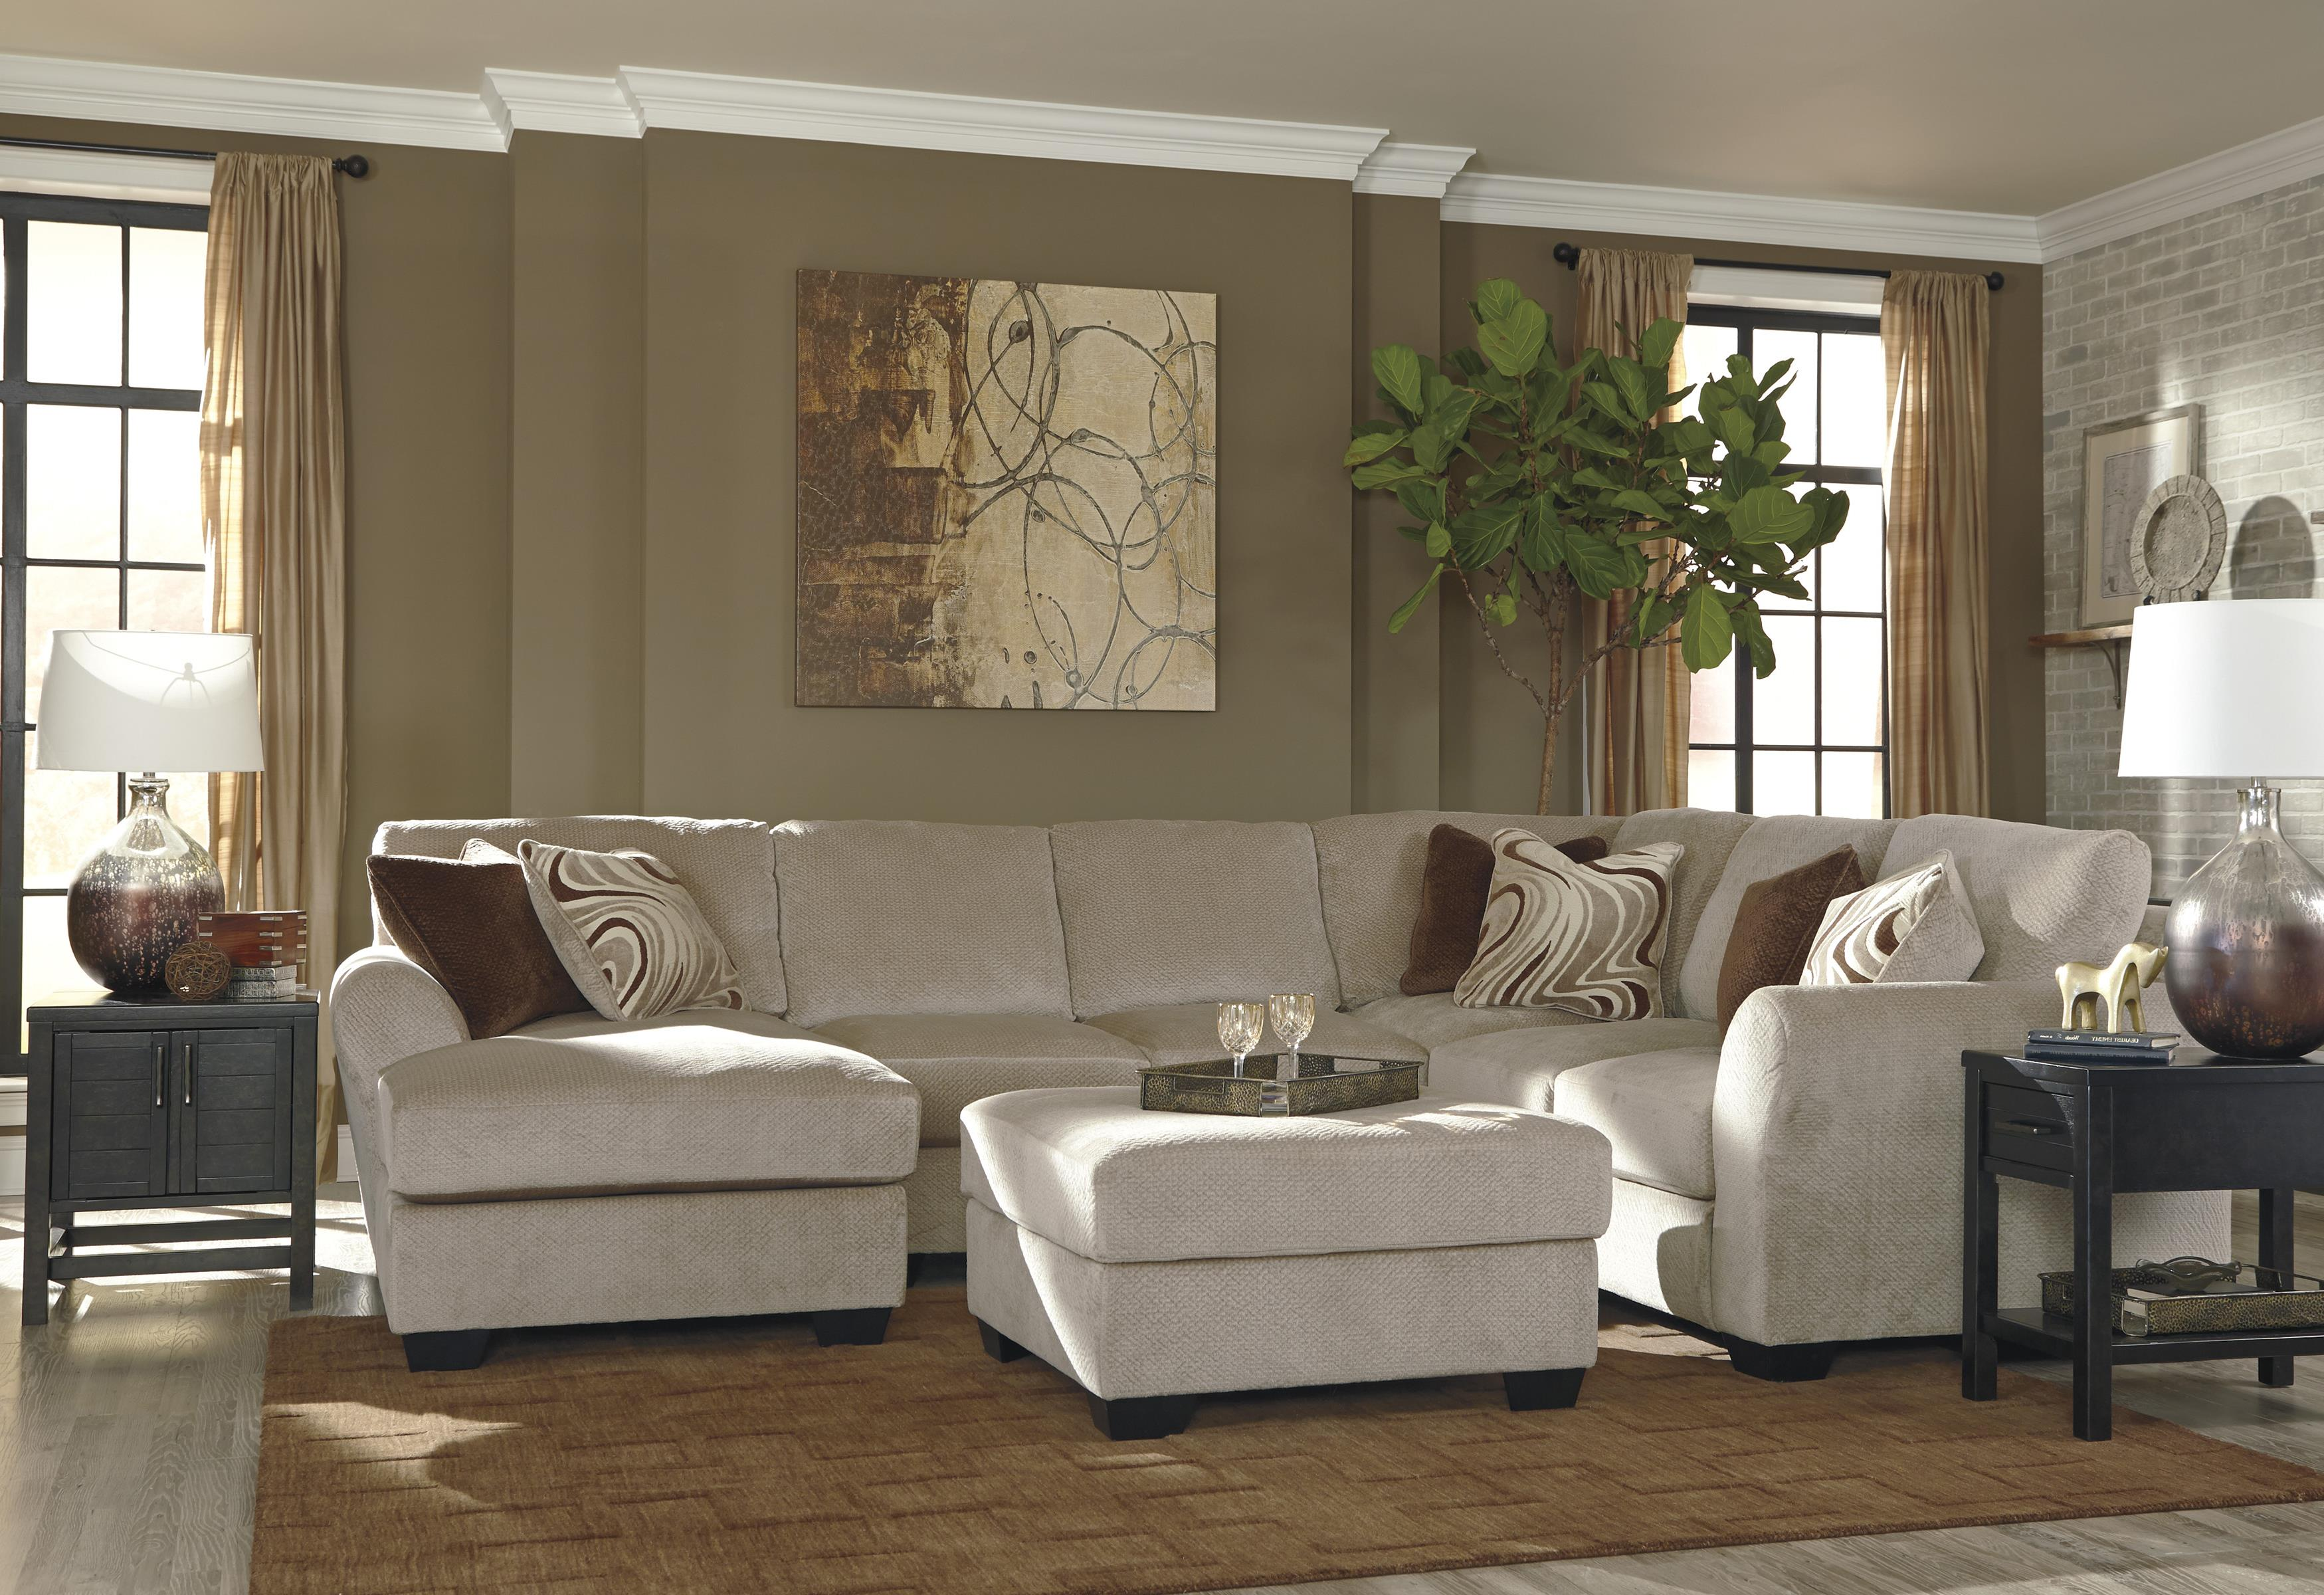 Benchcraft Hazes Stationary Living Room Group - Item Number: 65701 Living Room Group 2